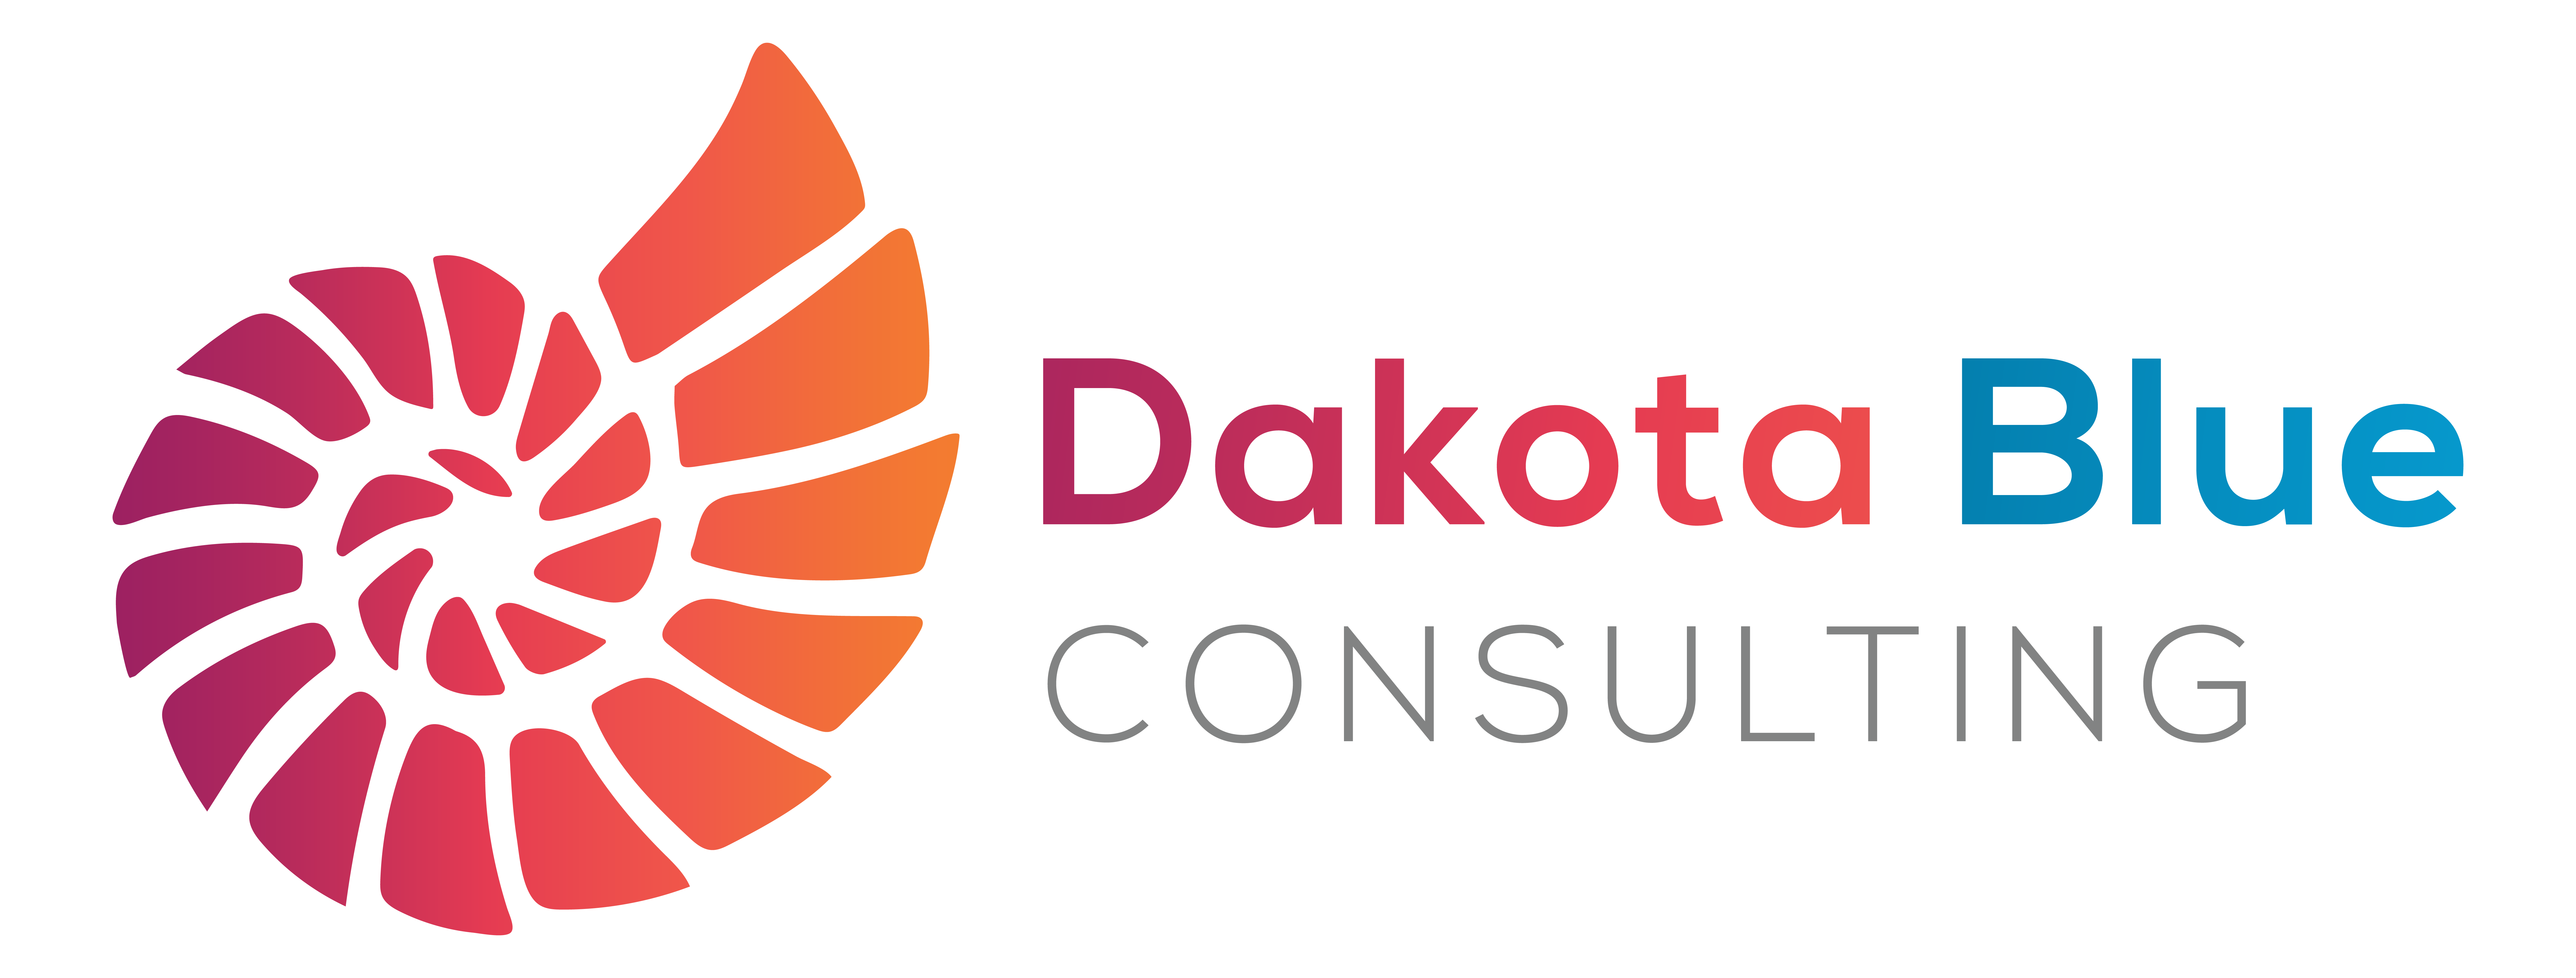 Dakota Blue Consulting.com